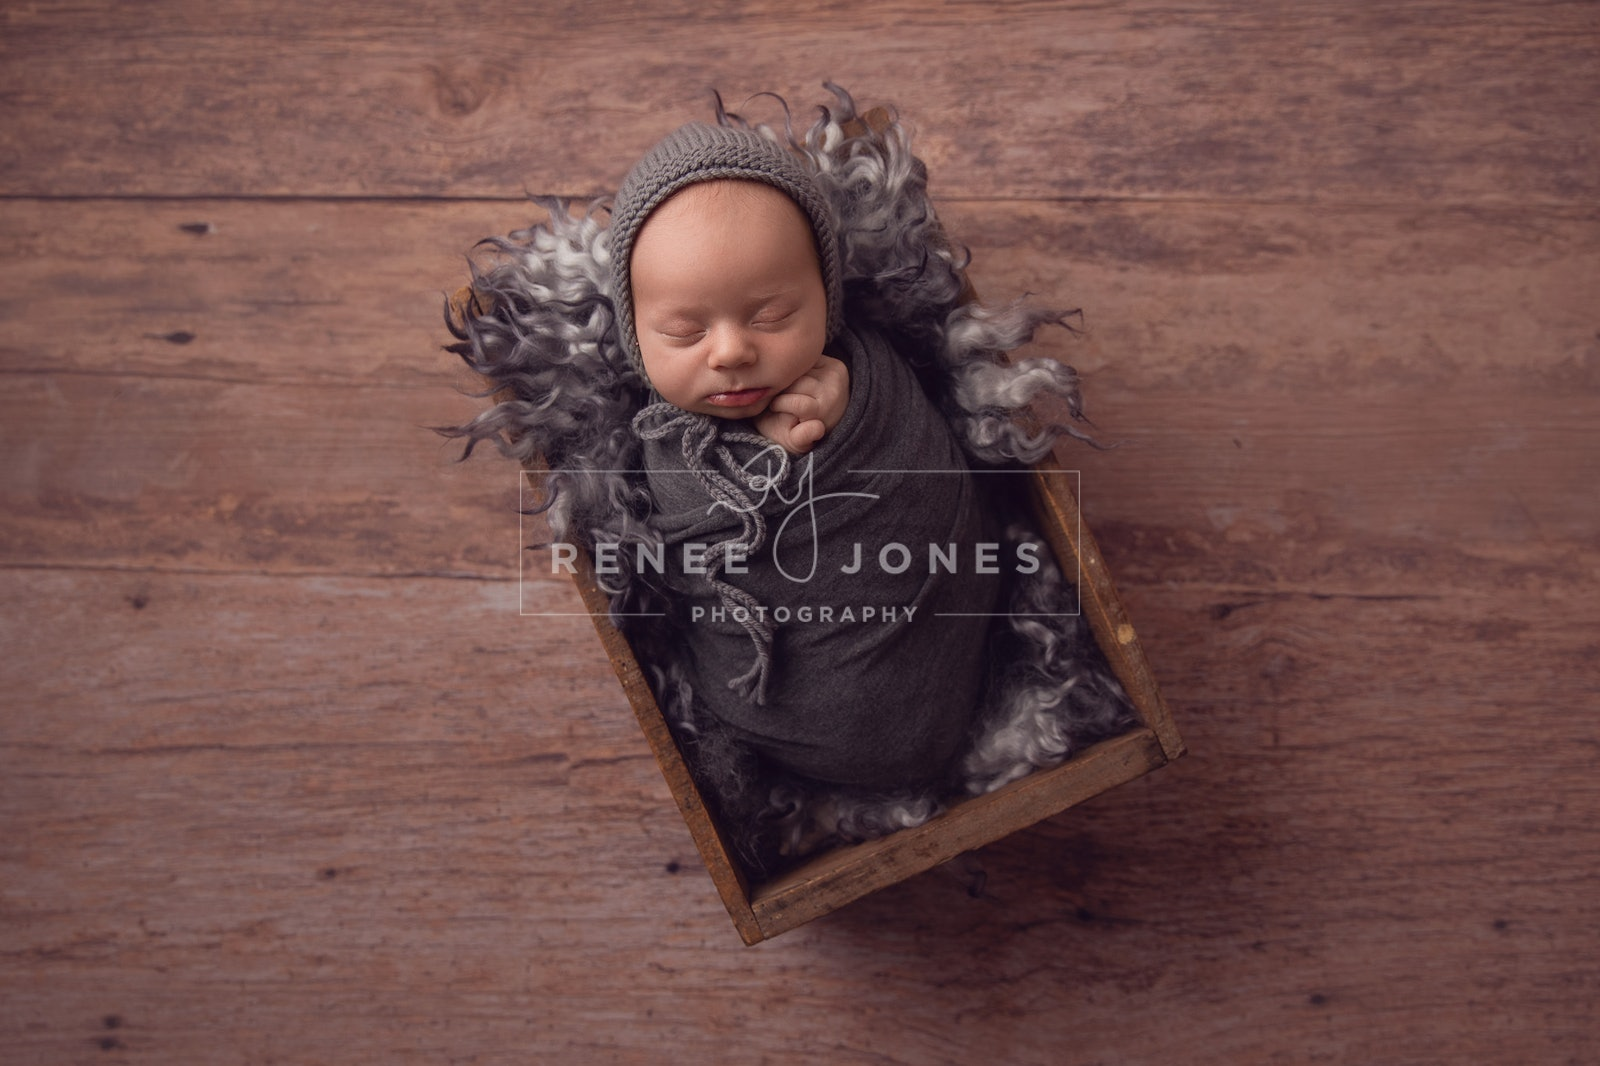 Rustic Baby in crate - Brisbane Newborn Photographer - Newborn baby sleeping in a rustic wooden crate. Brisbane newborn photographer